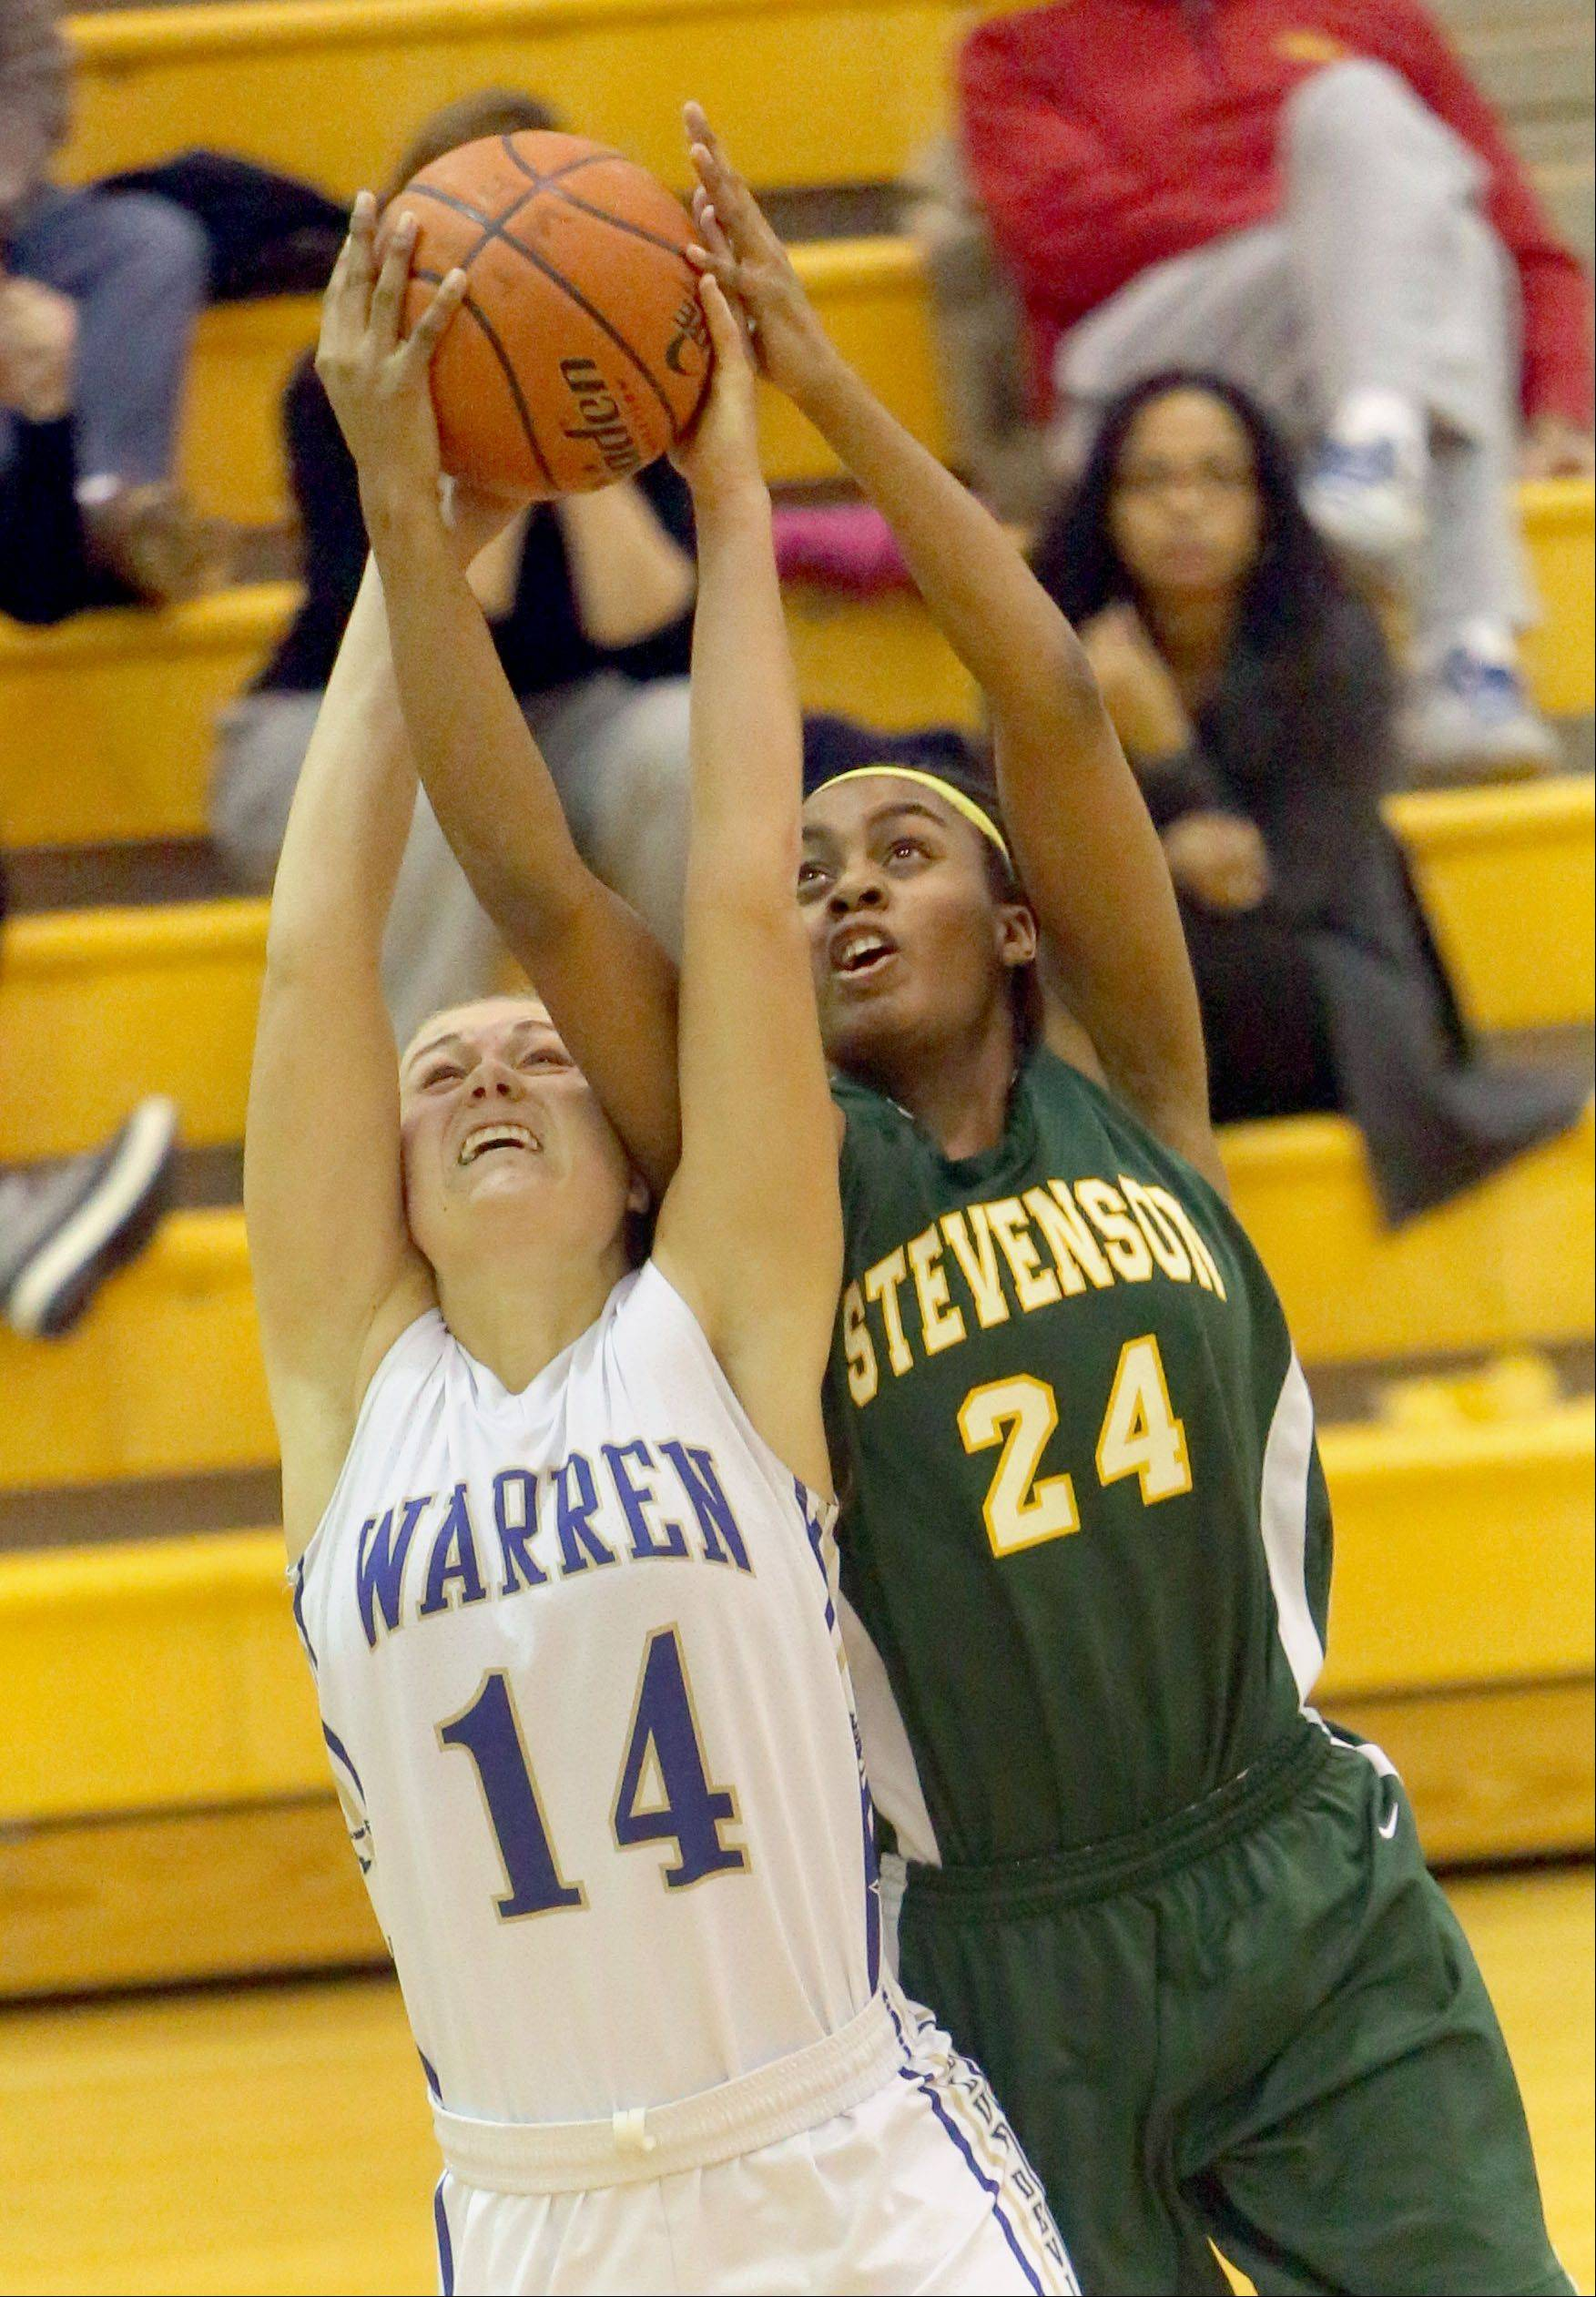 Warren's Kristen O'Brien (14) and Stevenson's Taylor Buford pull down a rebound during Tuesday's basketball game in Gurnee.